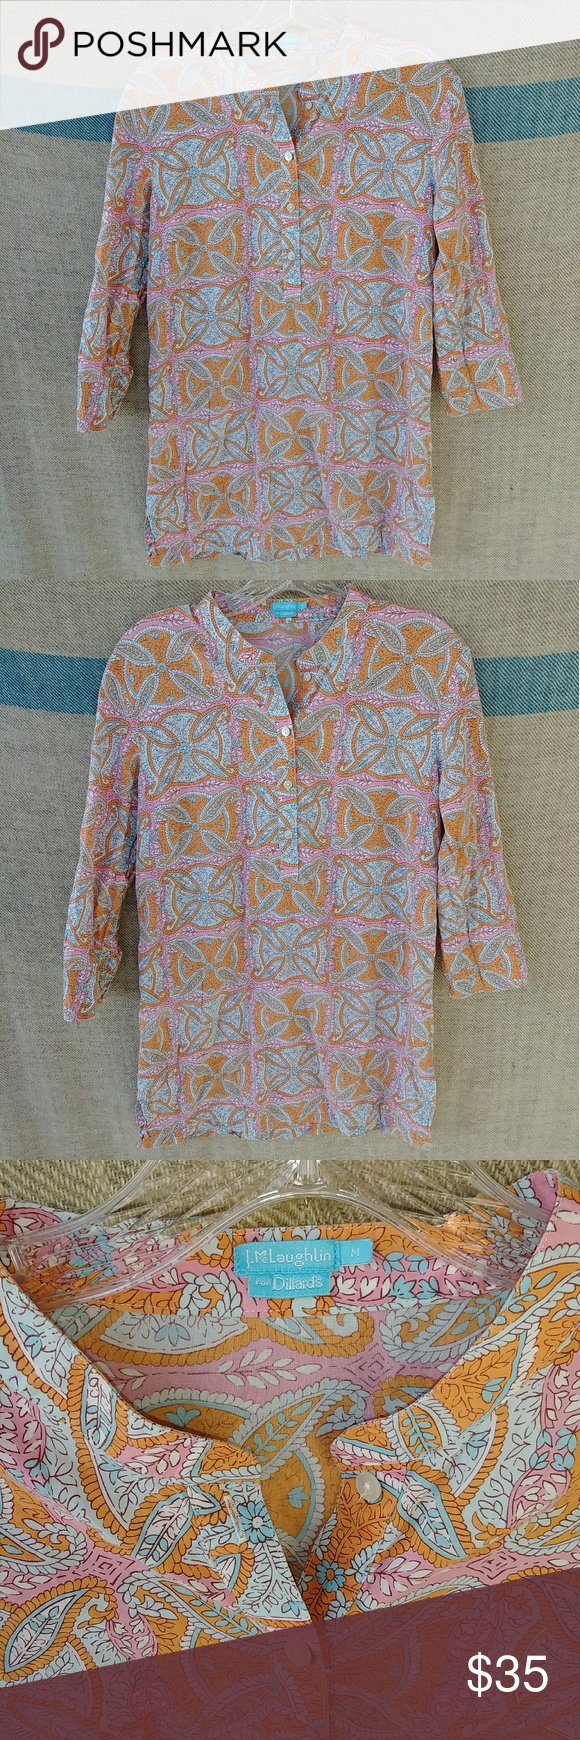 bcb5ad57e10 J.McLaughlin for Dillards paisley tunic top medium Excellent condition. No  flaws. Don't be afraid to Make offers on items you want. Send Offers, Get  DEALS!